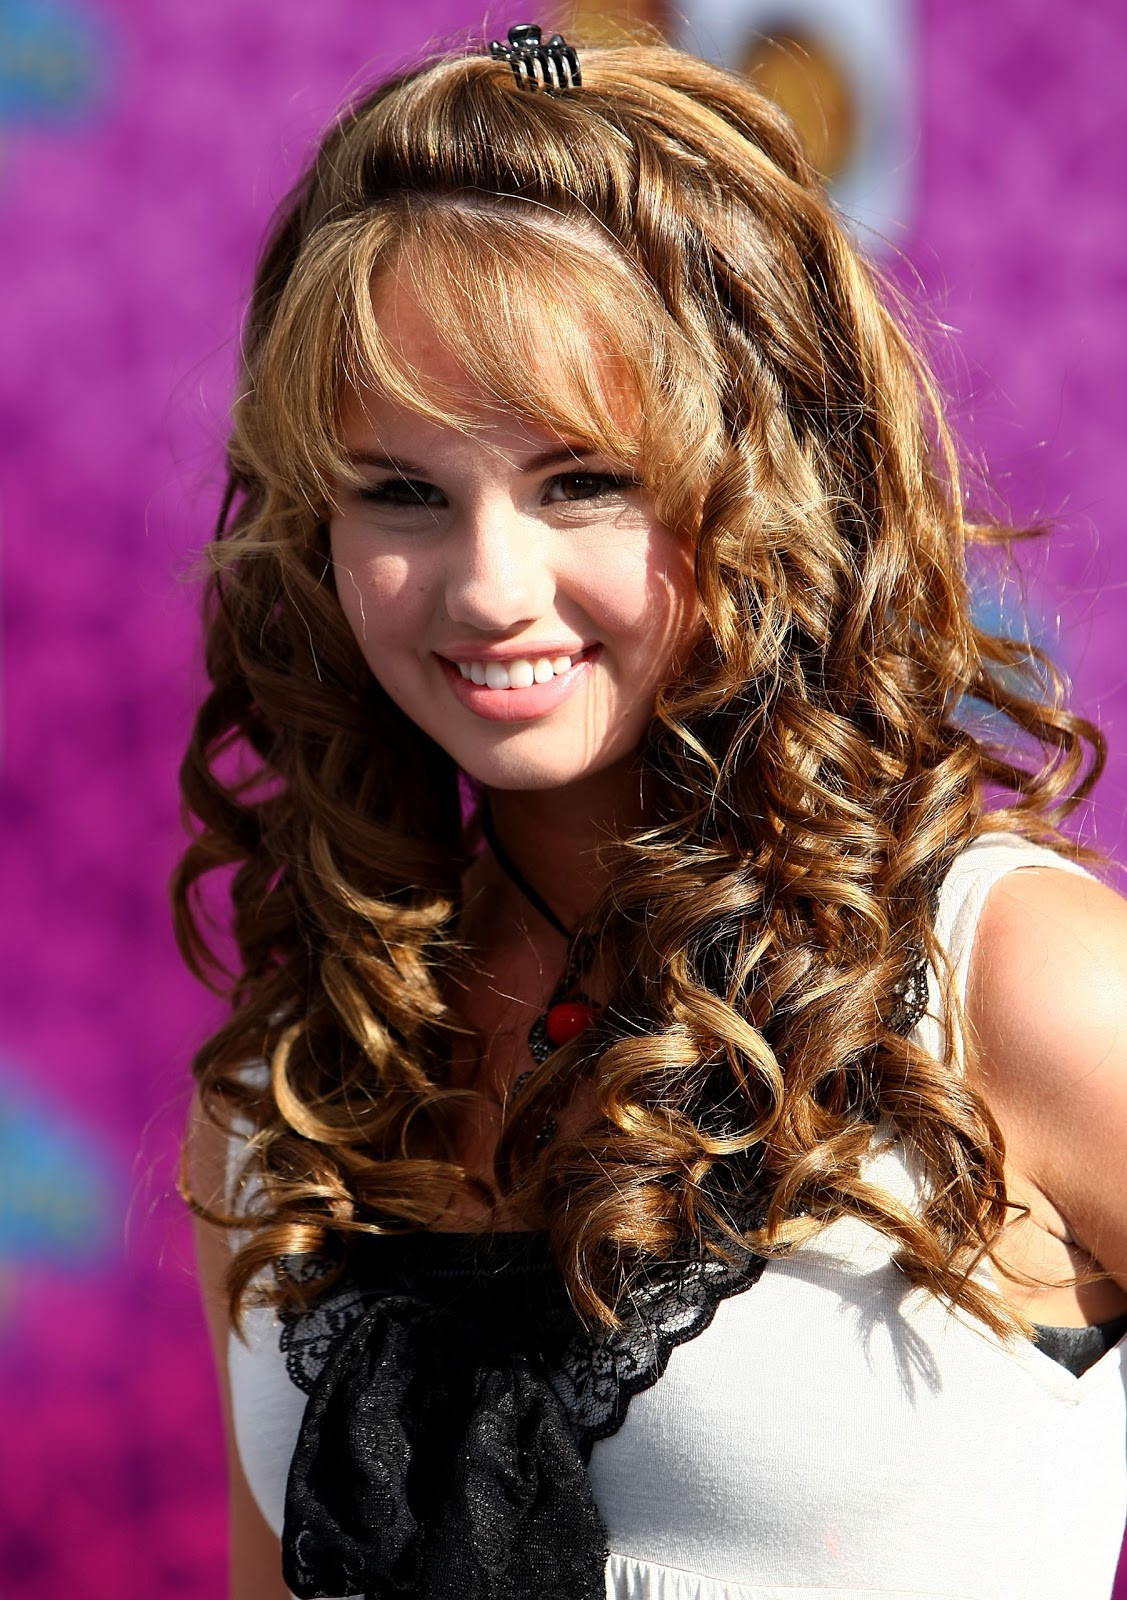 Hairstyles For Teen Girls  Long Curly Brown Hairstyles for Teen Girl from Debby Ryan